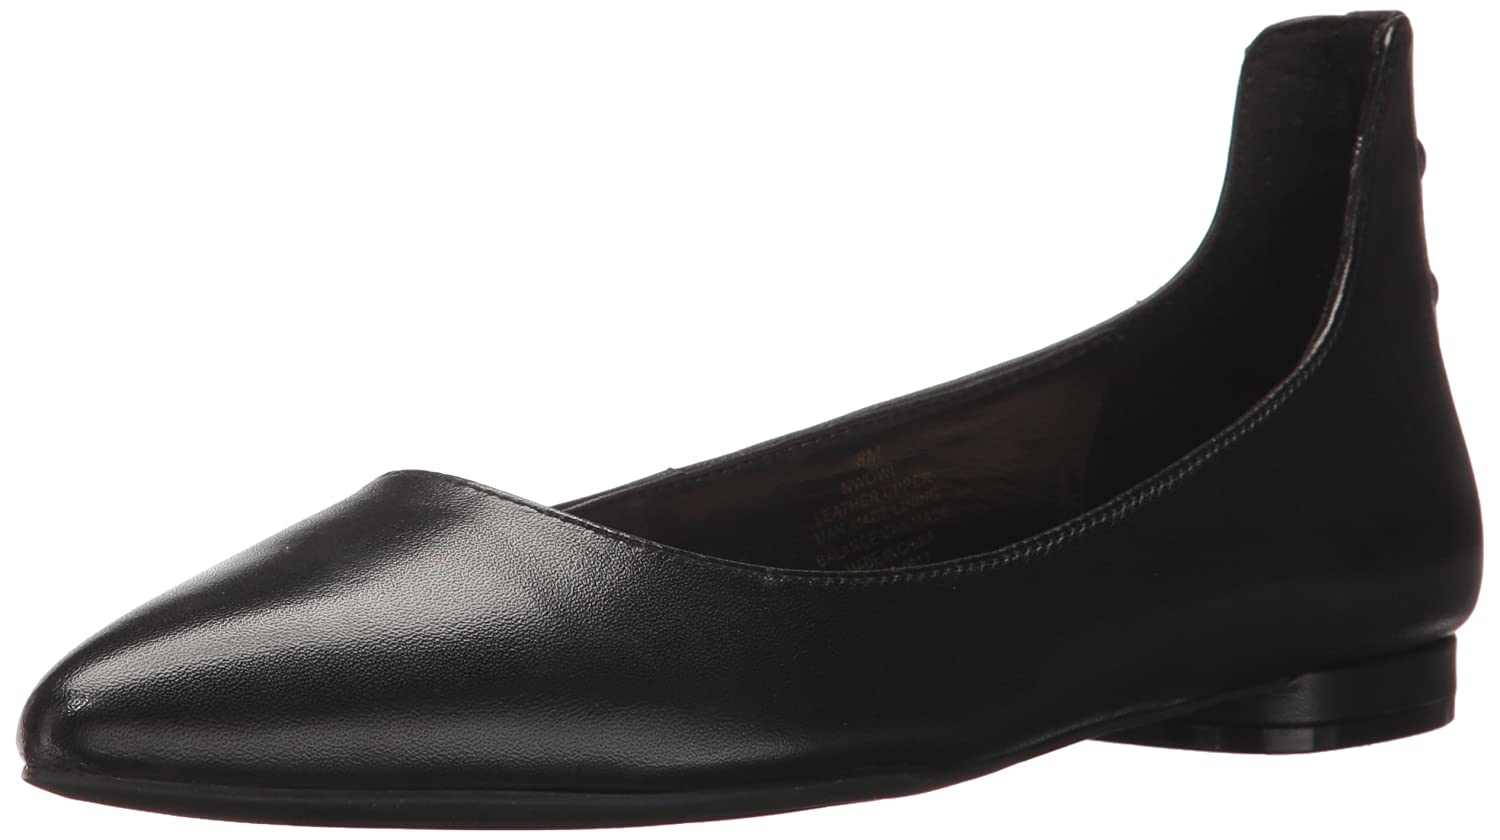 Nine West Women's Owl Leather B072F97Q4N 11 B(M) US|Black Leather